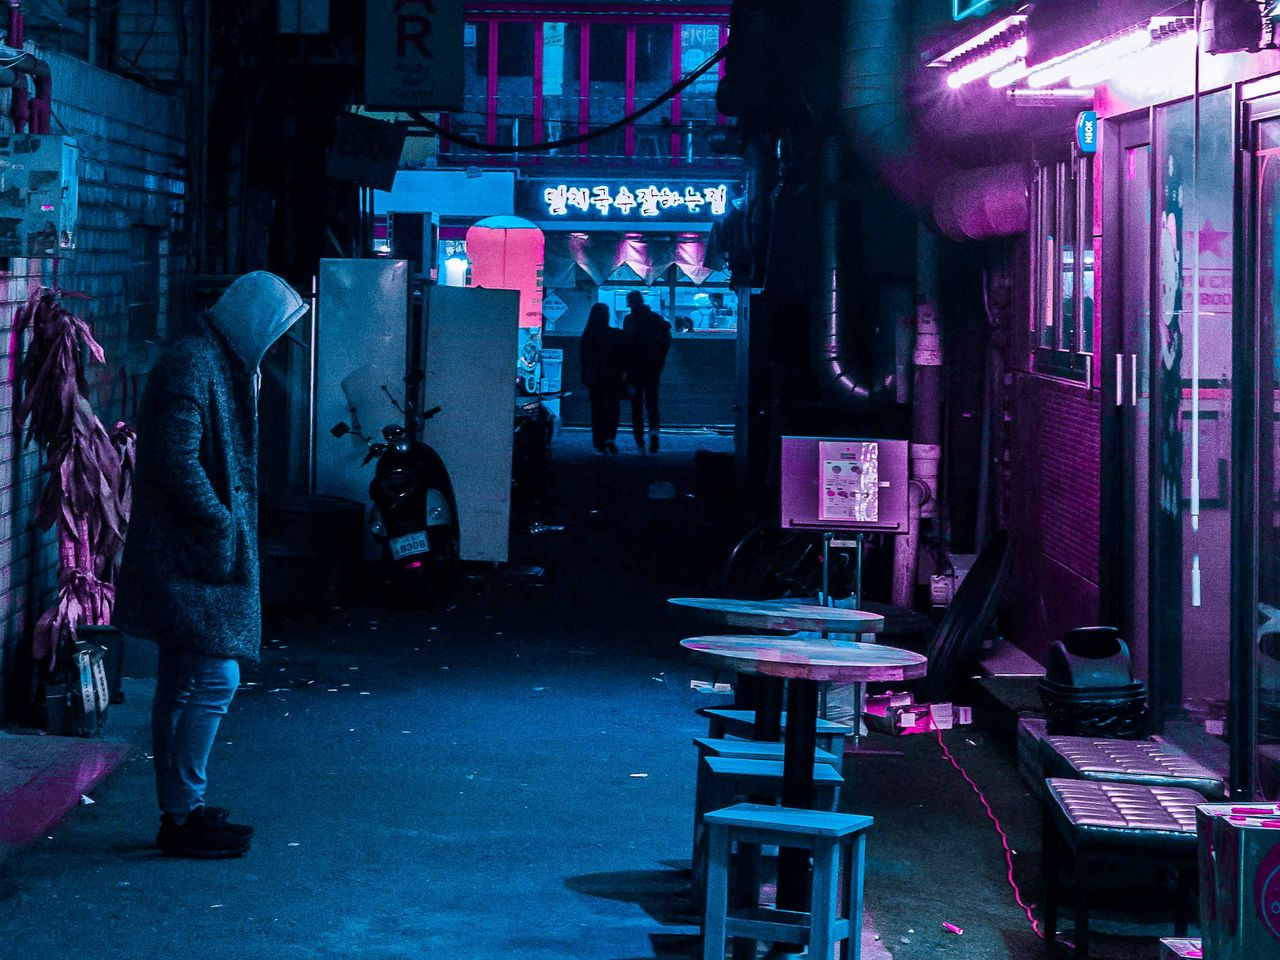 night_city_neon_street_134580_1280x960